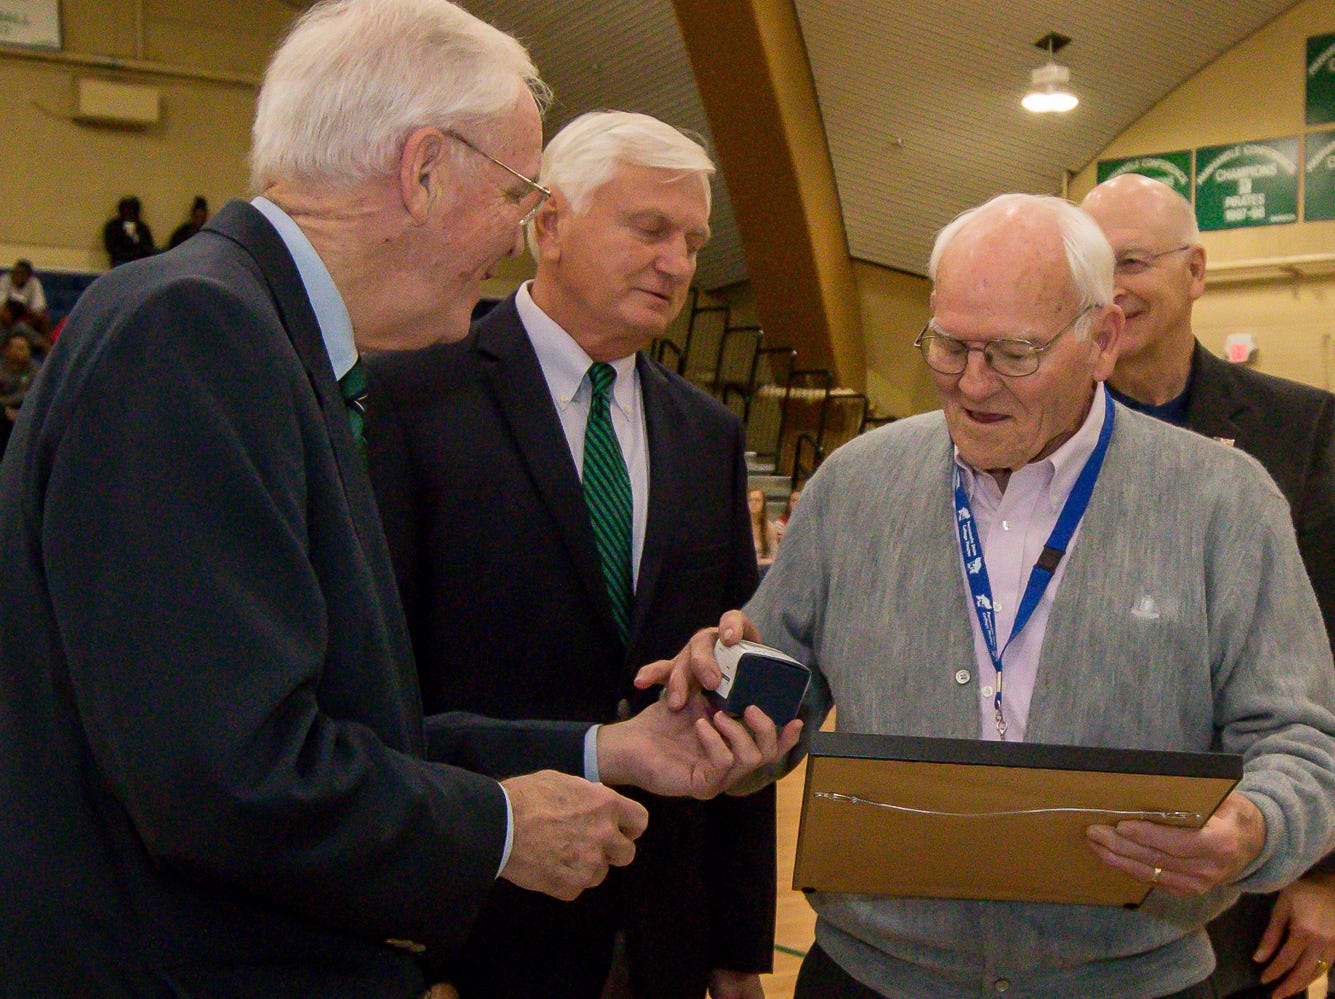 Dr. Bill Brantley is honored during Pensacola State College's inaugural Athletics Hall of Fame induction ceremony on Saturday, February 16, 2019, in the Hartsell Arena on the main campus. A former basketball player, Brantley taught at the college for over 30 years, and continues to donate to the PSC Foundation and the athletics department.